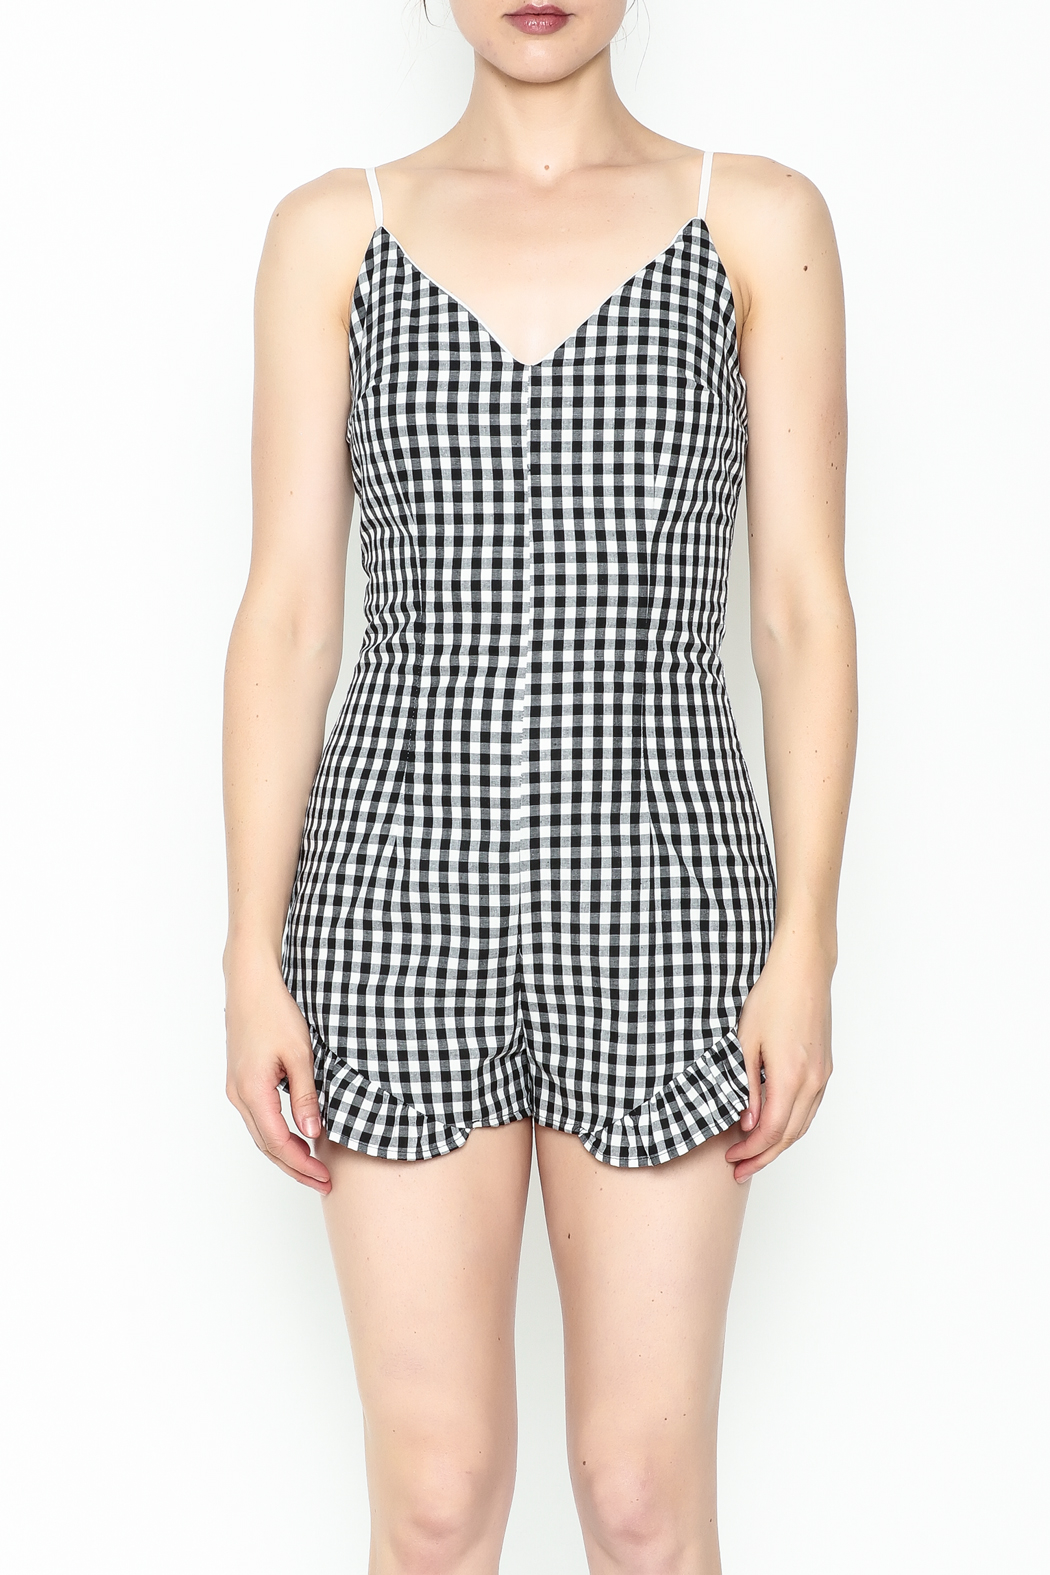 SAGE THE LABEL Gingham Ruffle Romper - Front Full Image